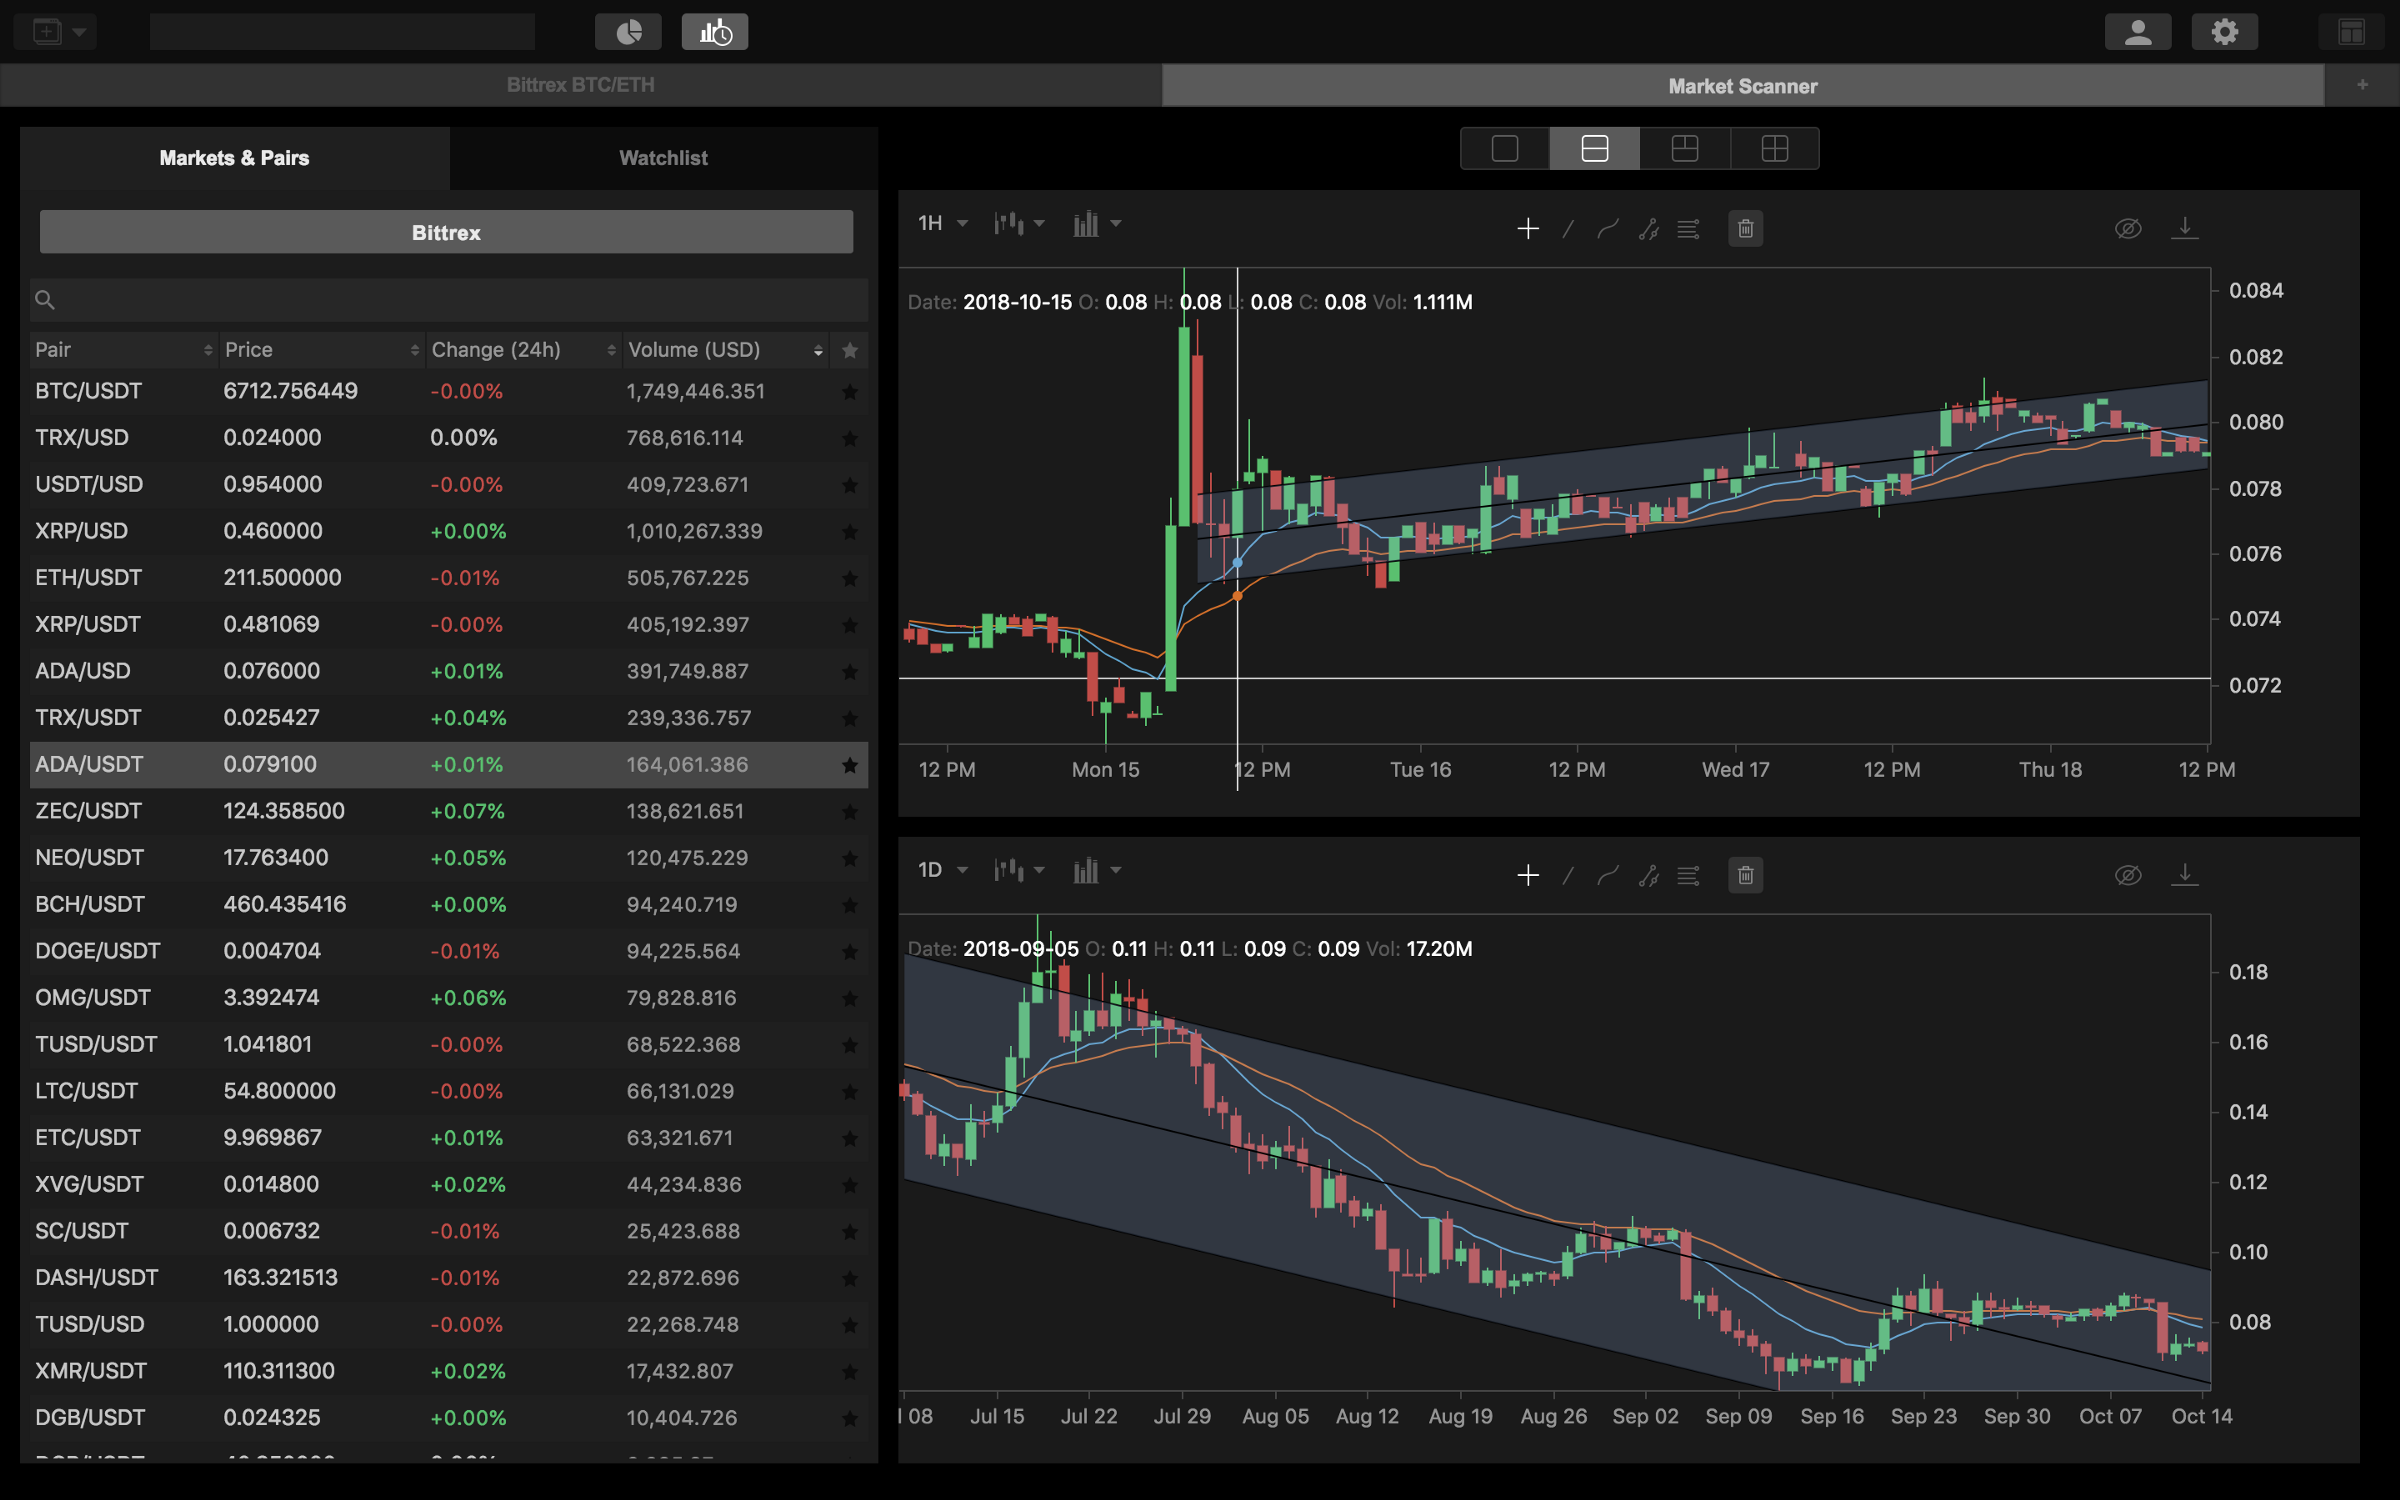 /hack-your-crypto-trading-with-multiple-time-frame-analysis-fcf13153f5da feature image